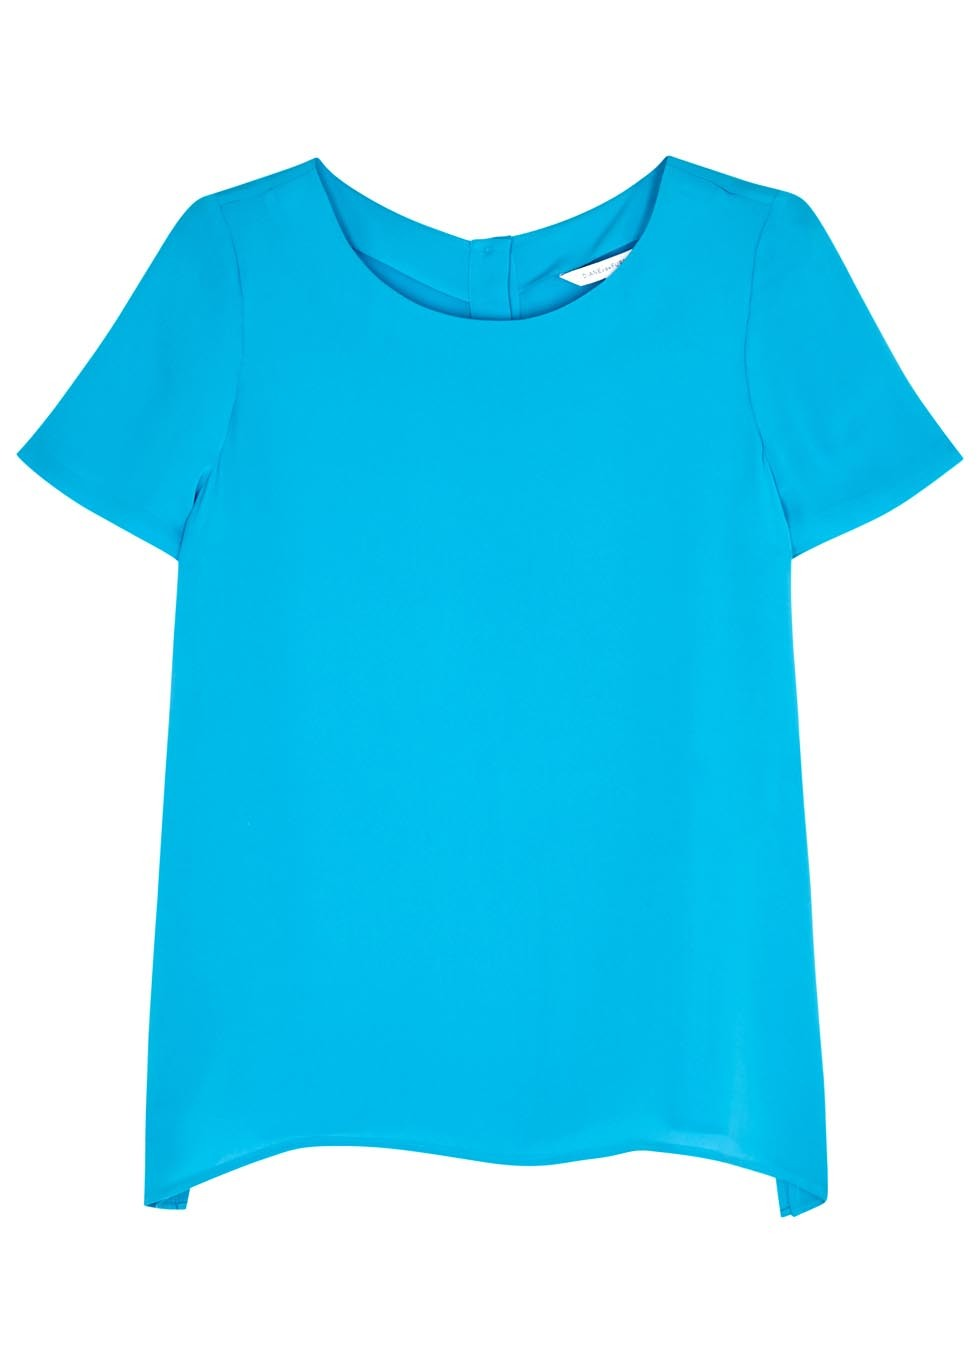 Maggy Bright Blue Silk Top - pattern: plain; predominant colour: diva blue; occasions: evening; length: standard; style: top; fibres: silk - 100%; fit: body skimming; neckline: crew; sleeve length: short sleeve; sleeve style: standard; texture group: silky - light; pattern type: fabric; season: s/s 2016; wardrobe: event